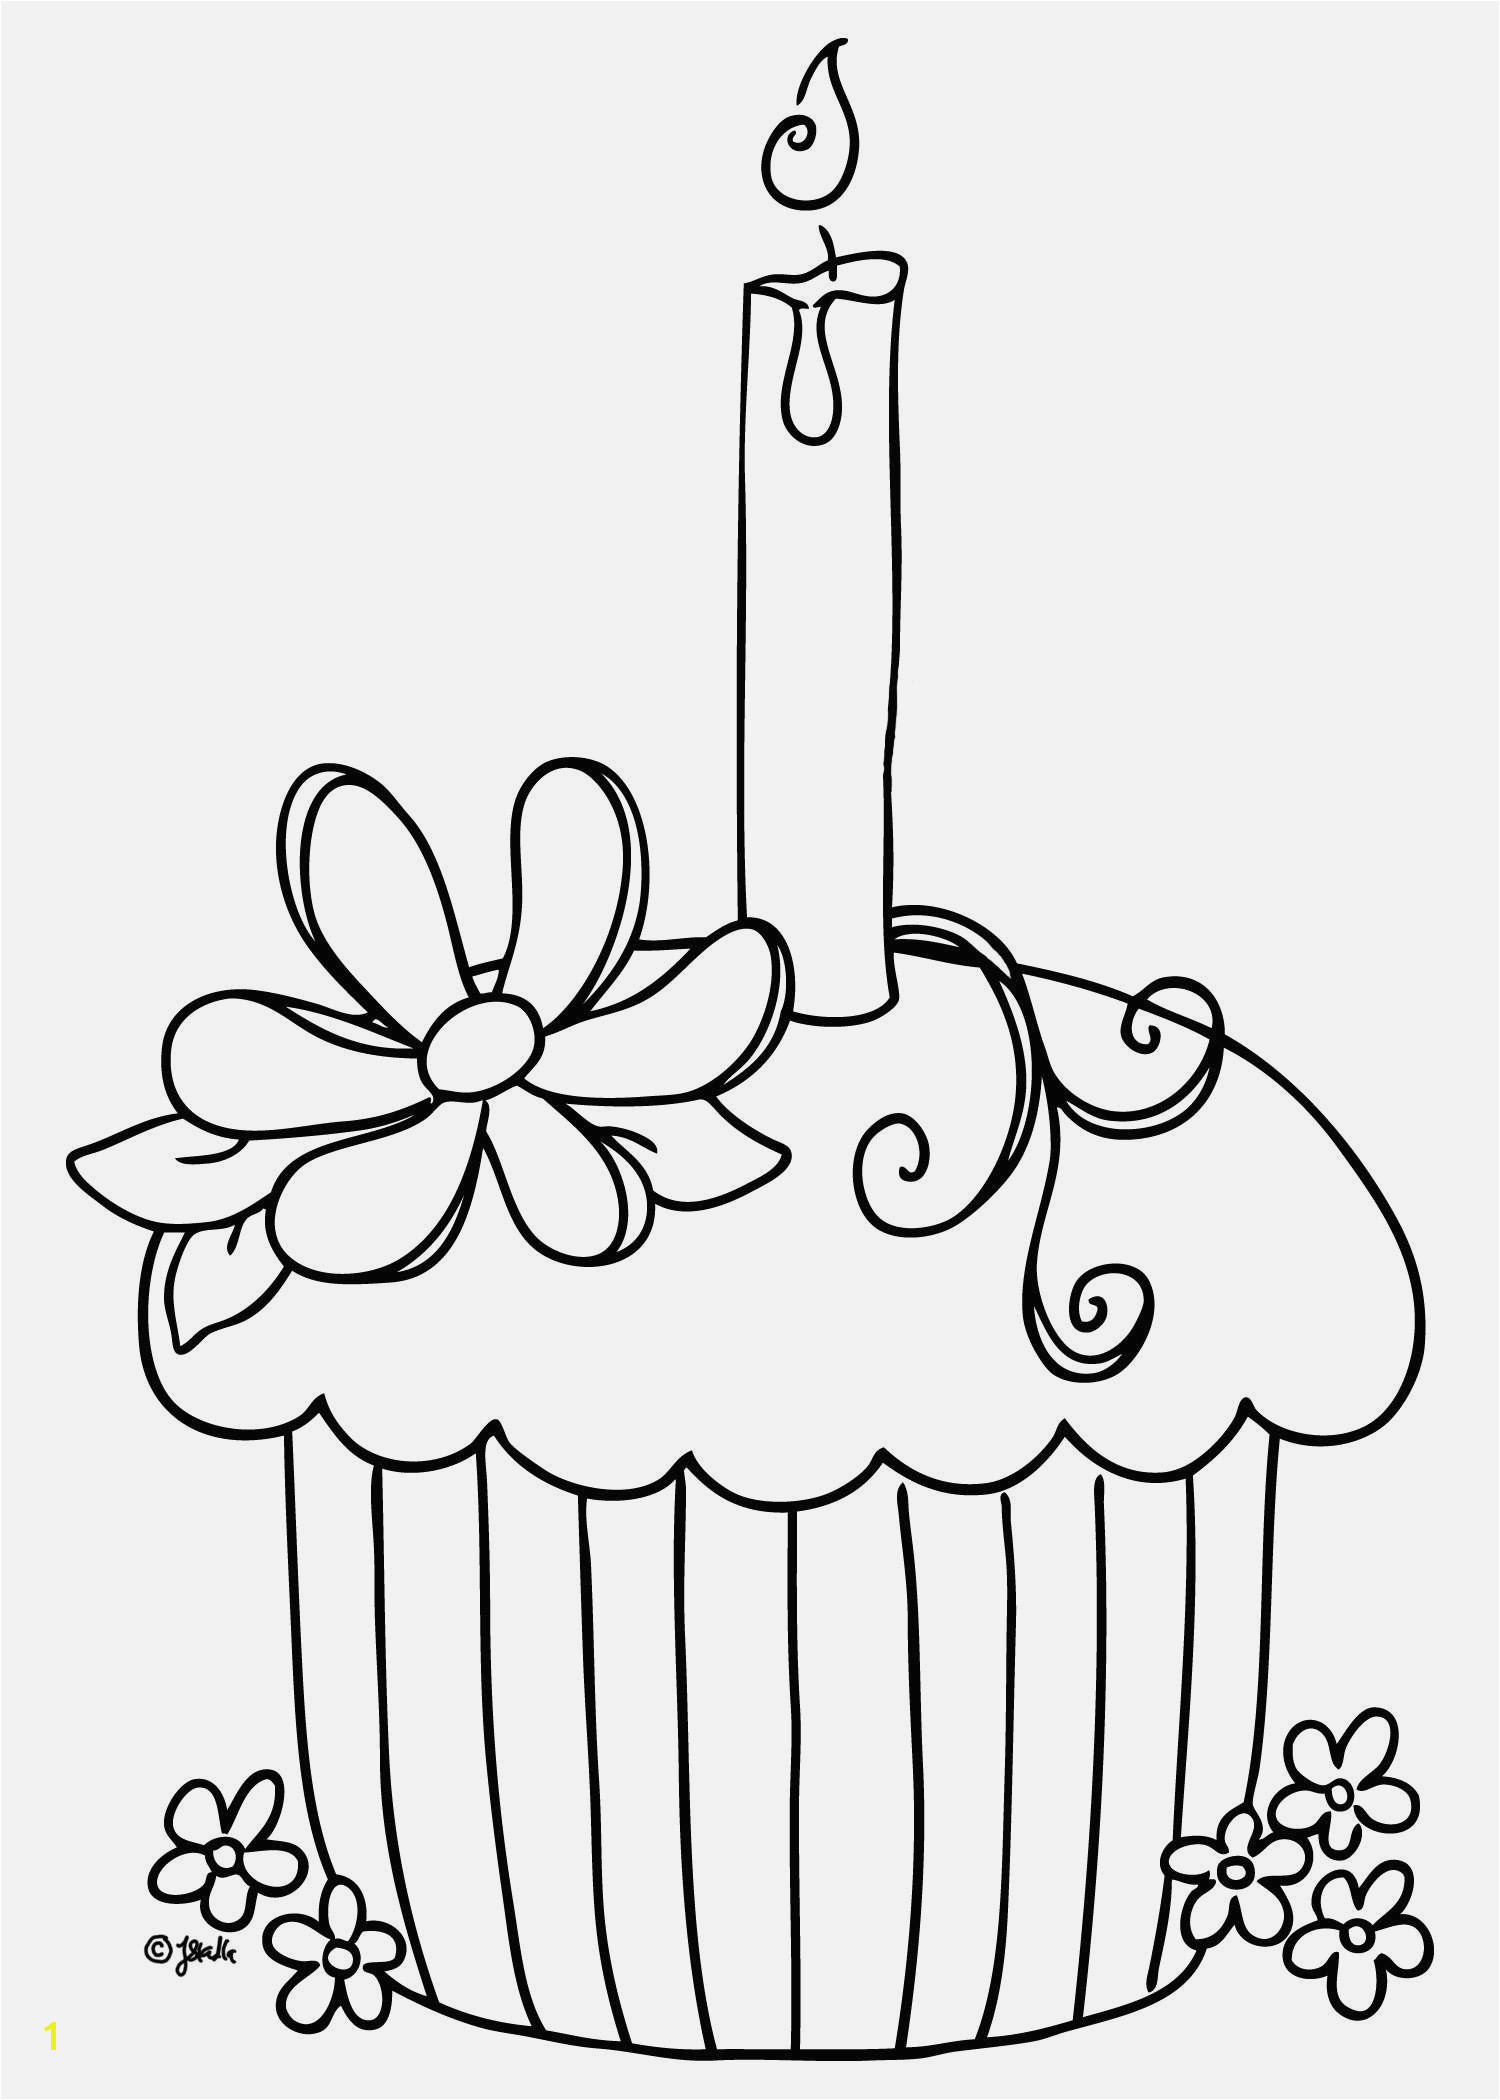 Cupcake Coloring Pages Coloring & Activity Coloring Pages for Girls Cupcakes Printable Cupcake Coloring Pages